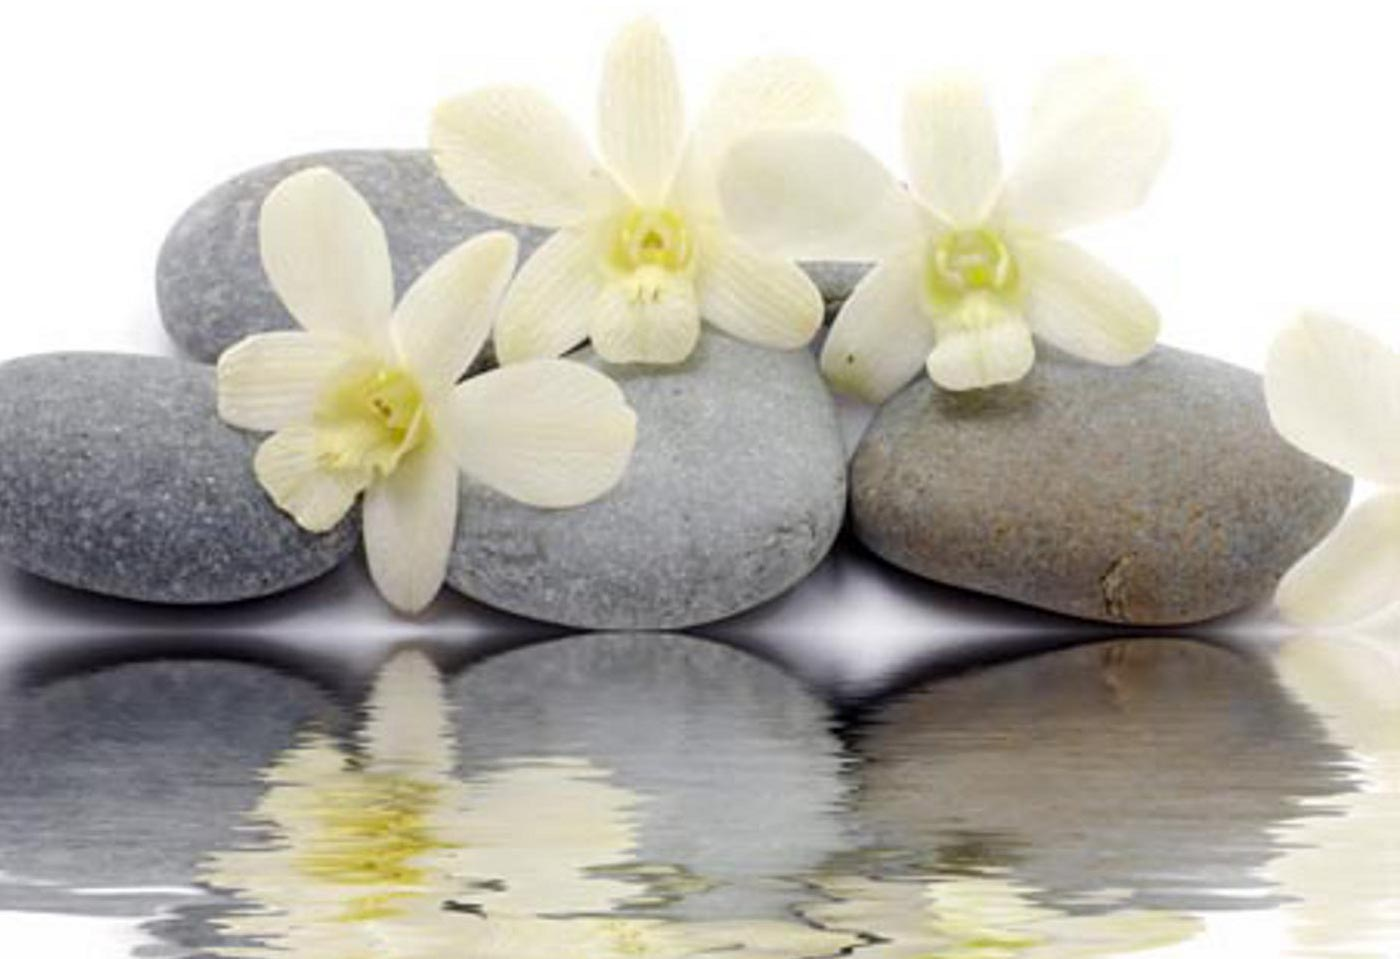 Hd wallpapers zen stones reflecting white flowers new desktop hd wallpapers zen stones reflecting white flowers new desktop 1400959 wallpaper mightylinksfo